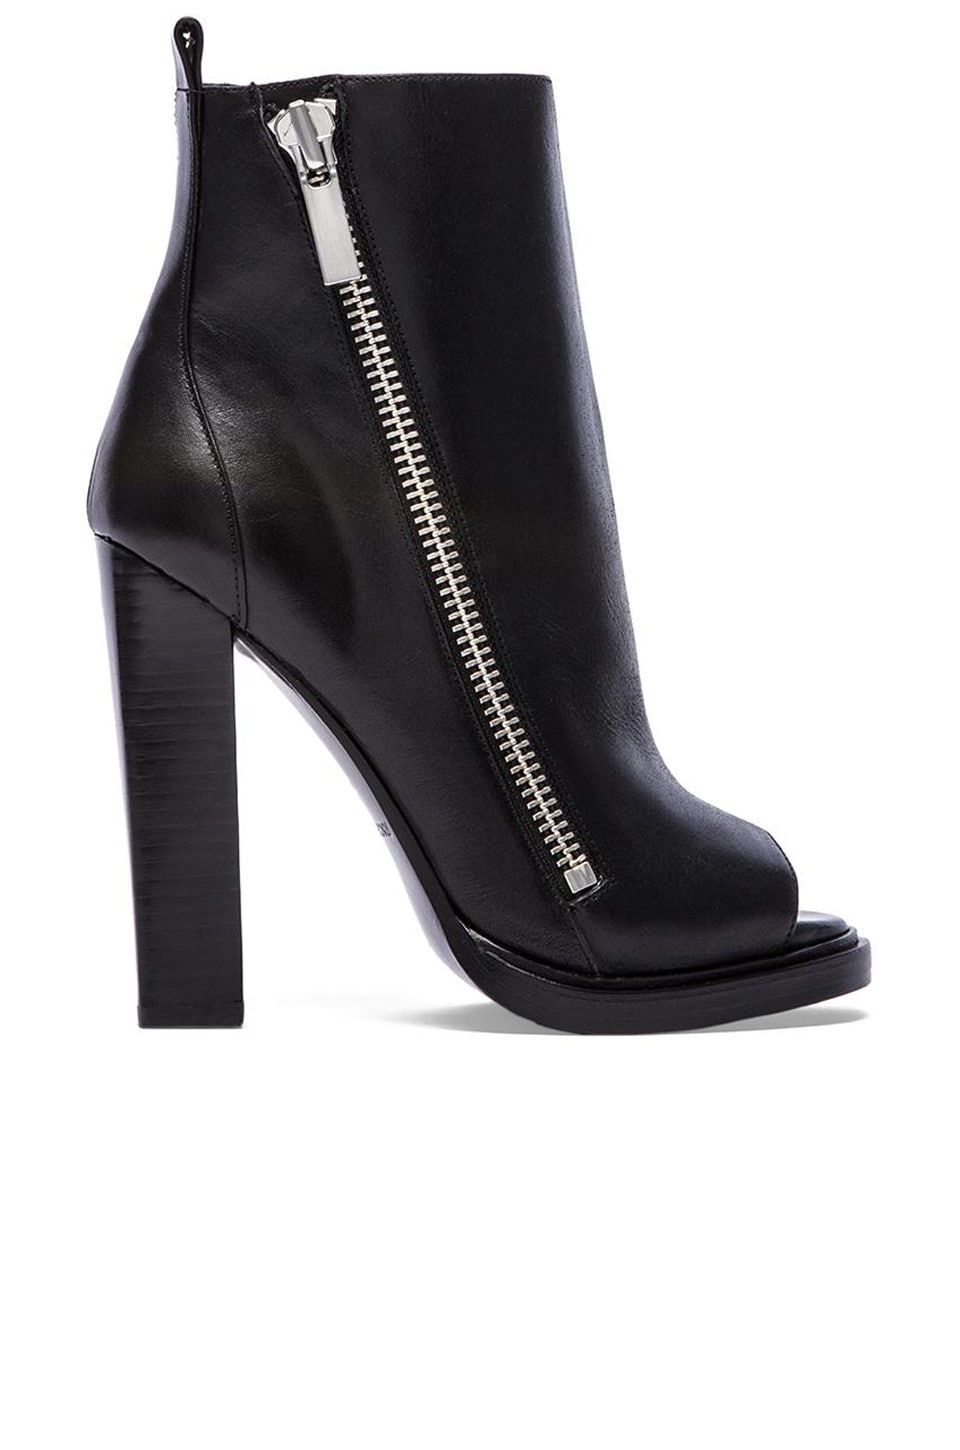 RACHEL ZOE Jillian Bootie in Black